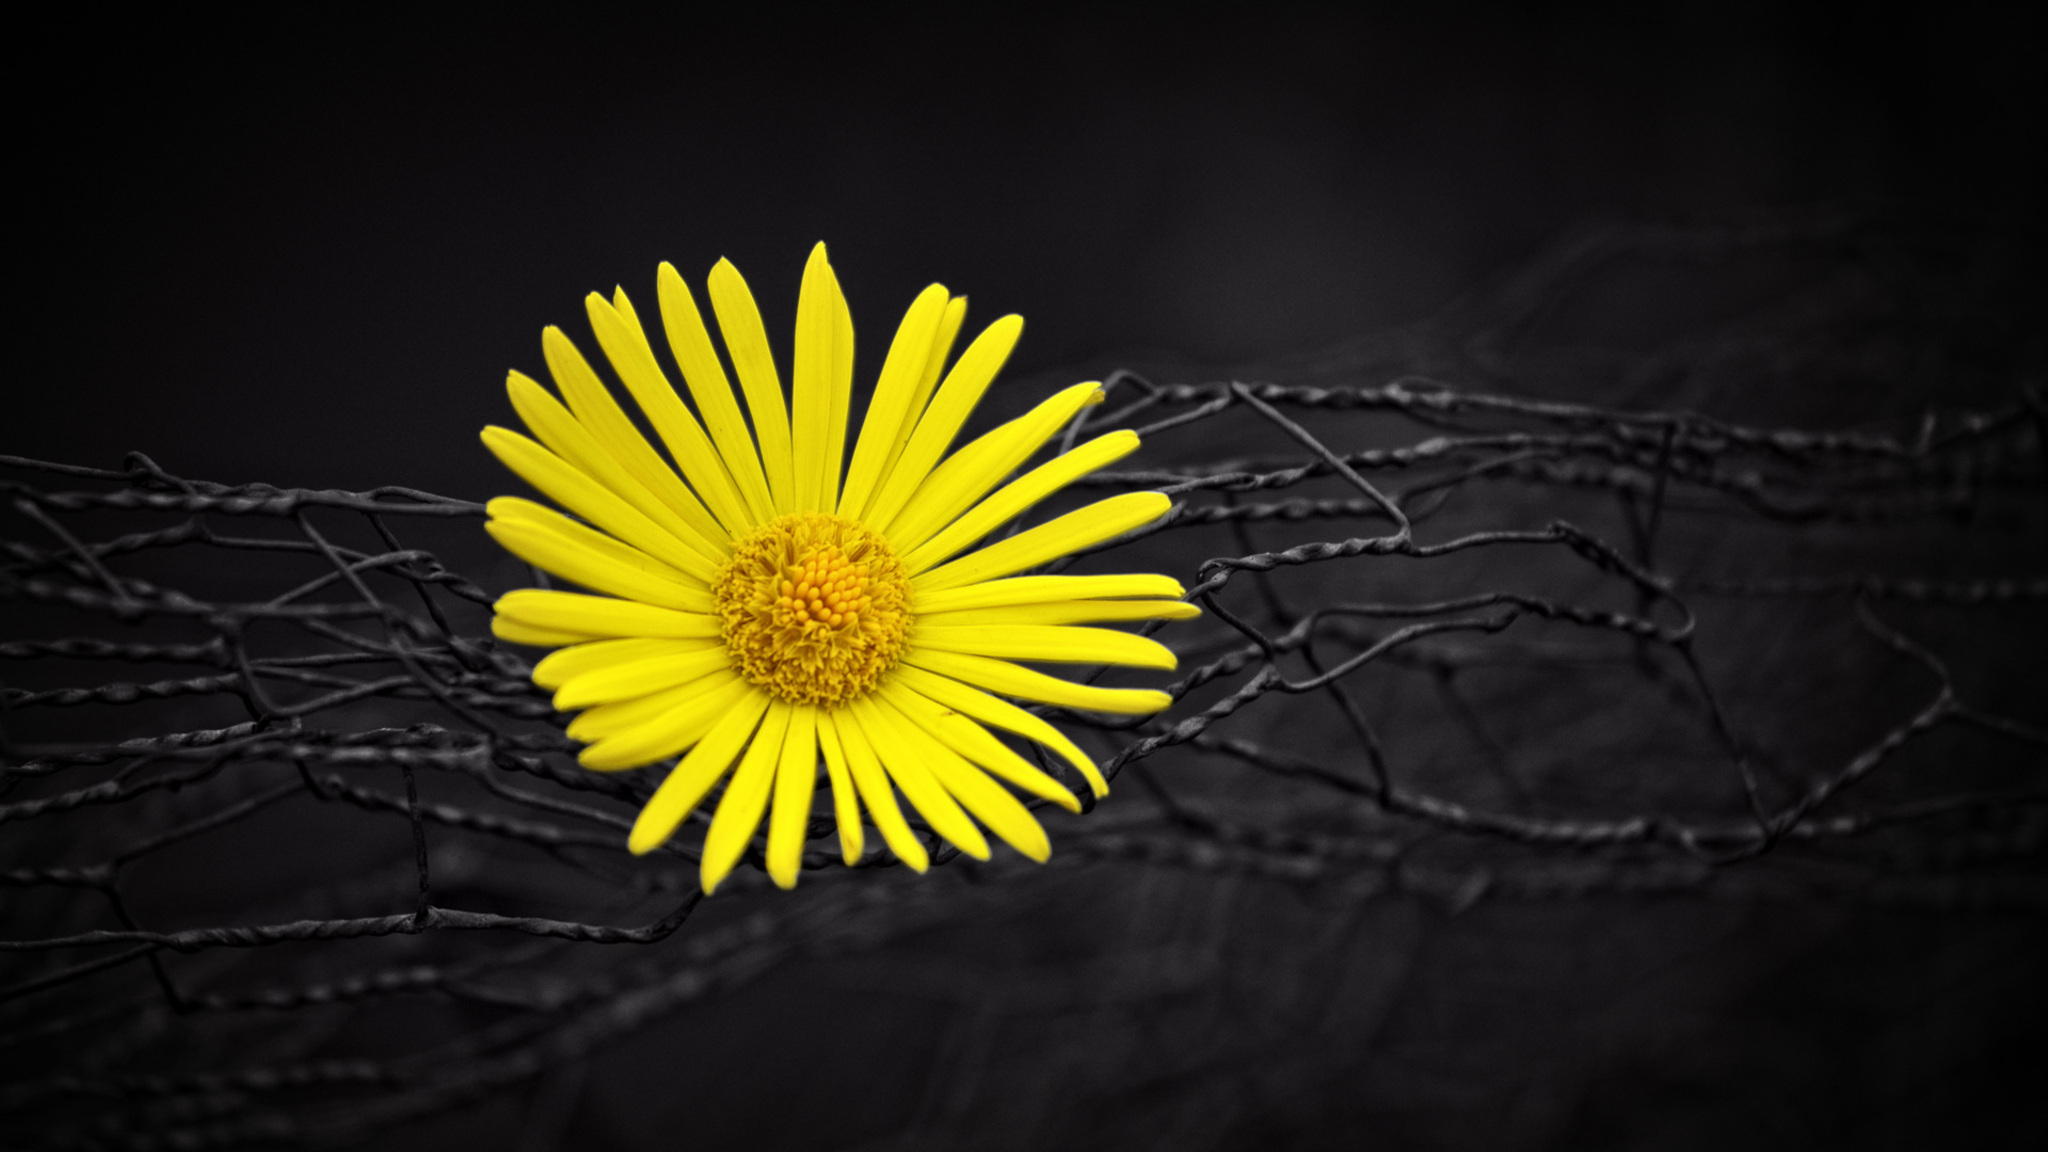 2048x1152 yellow flower fence dark black background 2048x1152 yellow flower fence dark black background exg mightylinksfo